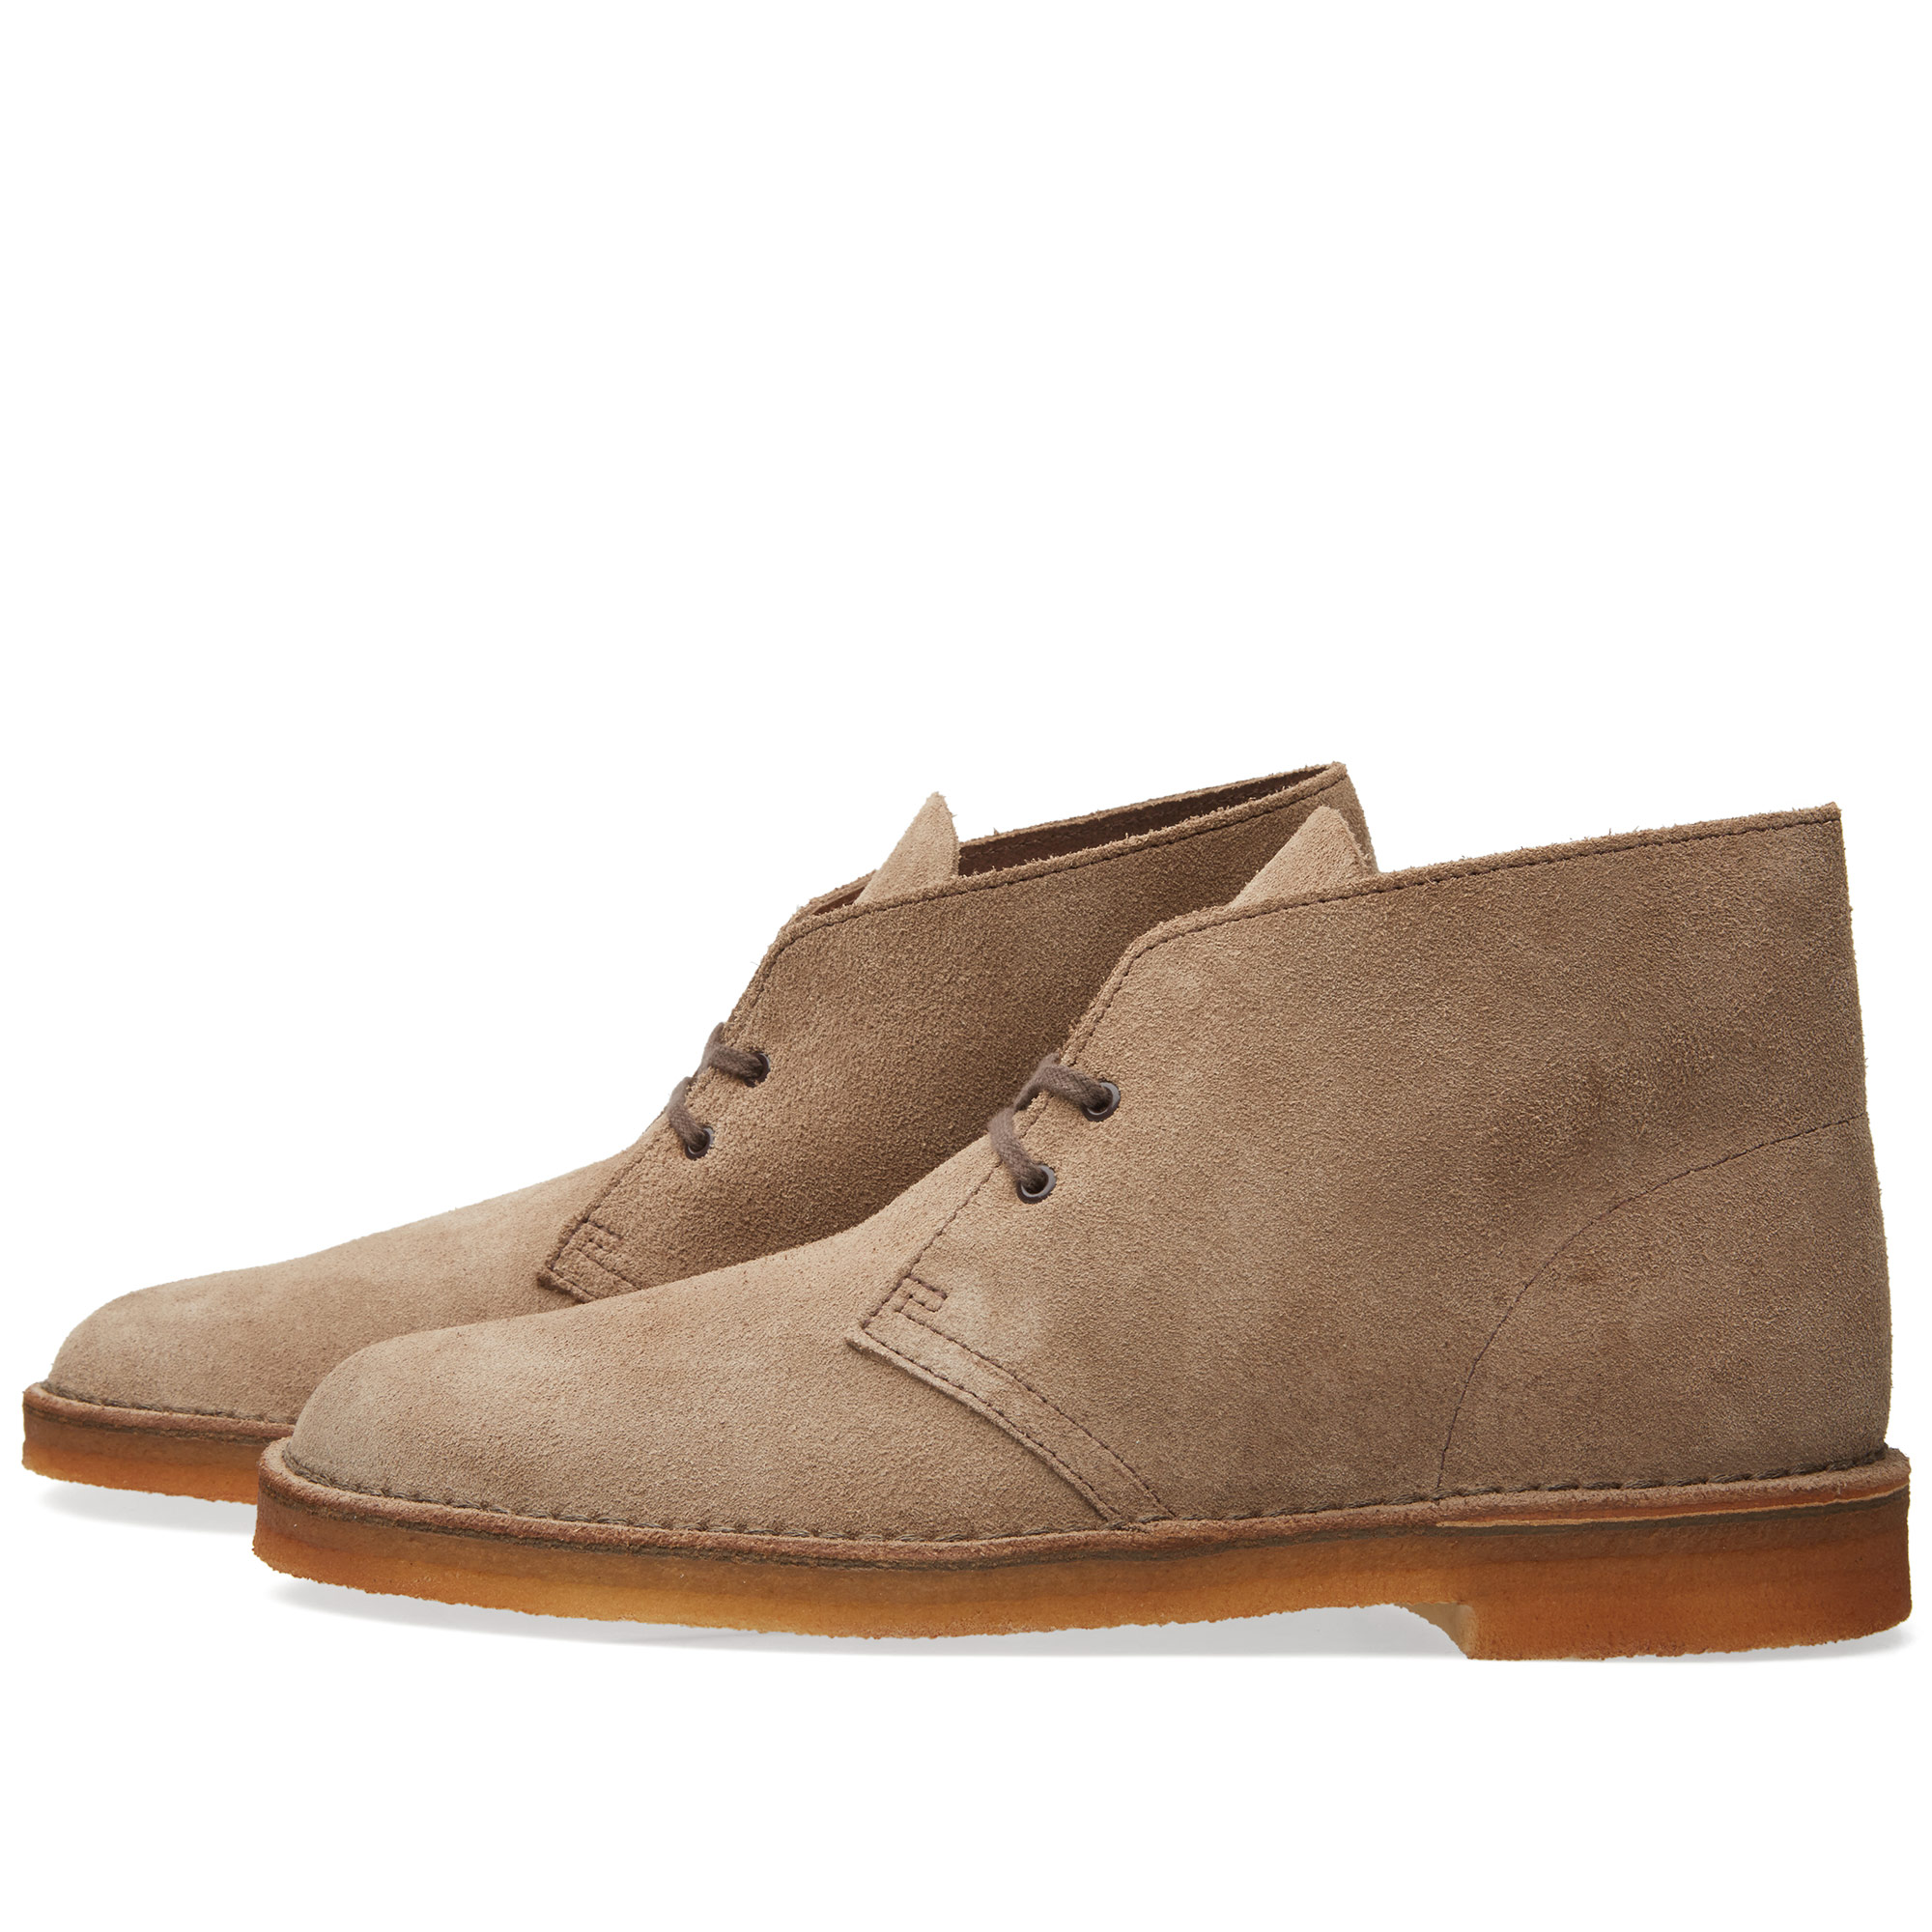 clarks originals desert boot wolf suede. Black Bedroom Furniture Sets. Home Design Ideas